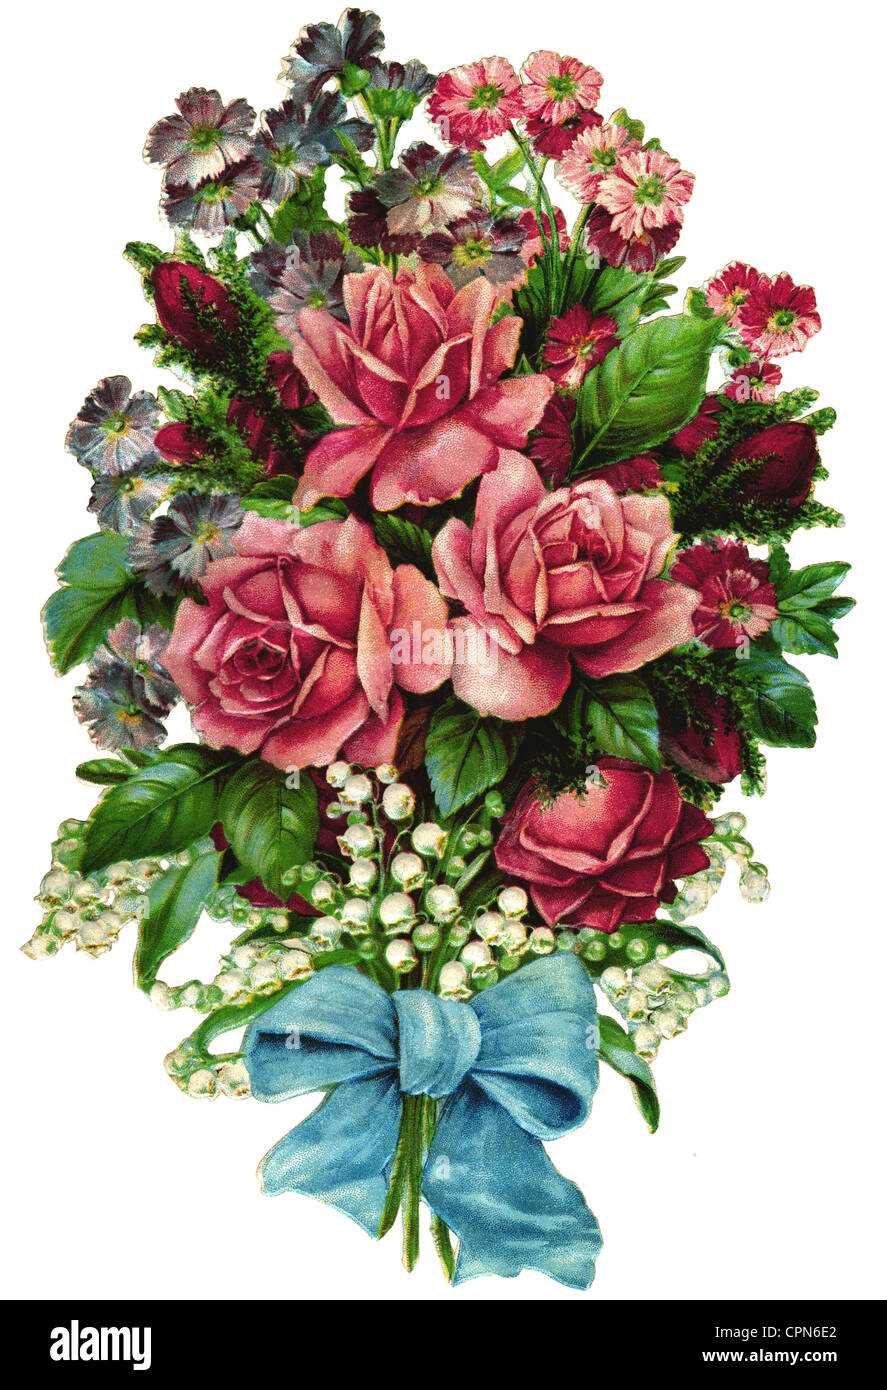 Decorative Rose Flower Bouquets Stock Photos & Decorative Rose ...